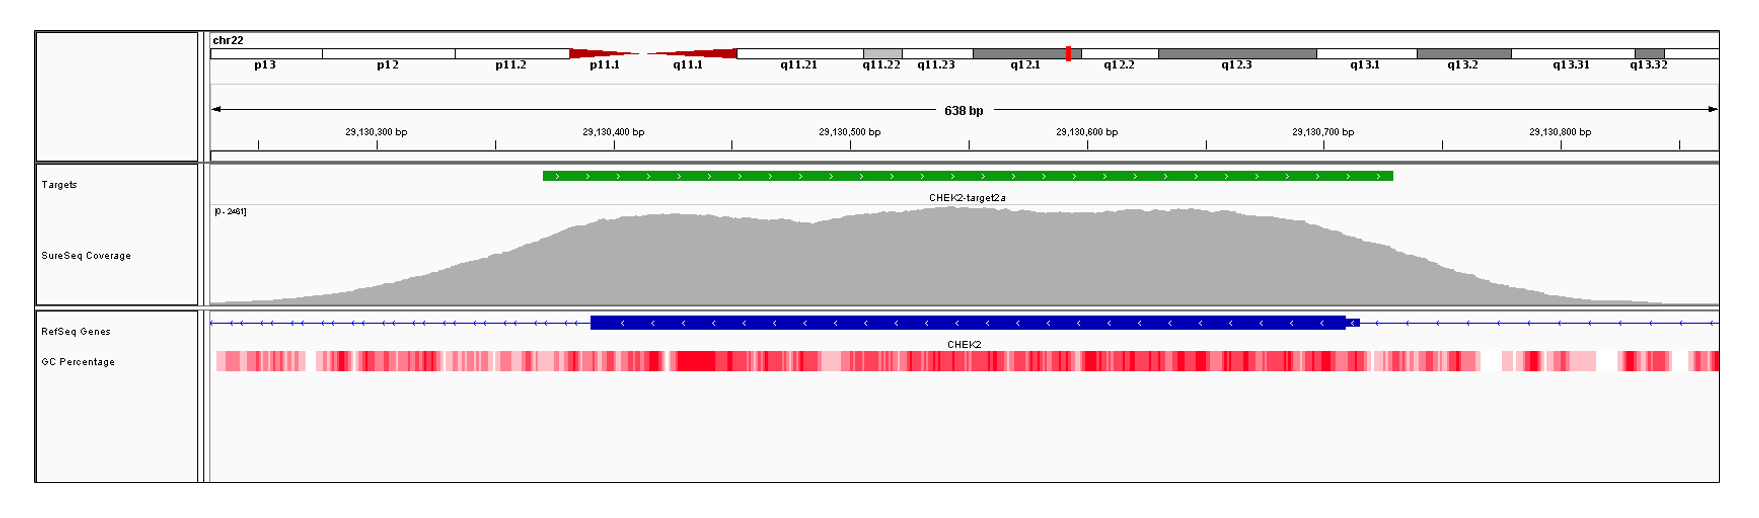 CHEK2 Exon 2 (hg19 chr22:29130391-29130715). Depth of coverage per base (grey). Targeted region (green). Gene coding region as defined by RefSeq (blue). GC percentage (red). Image